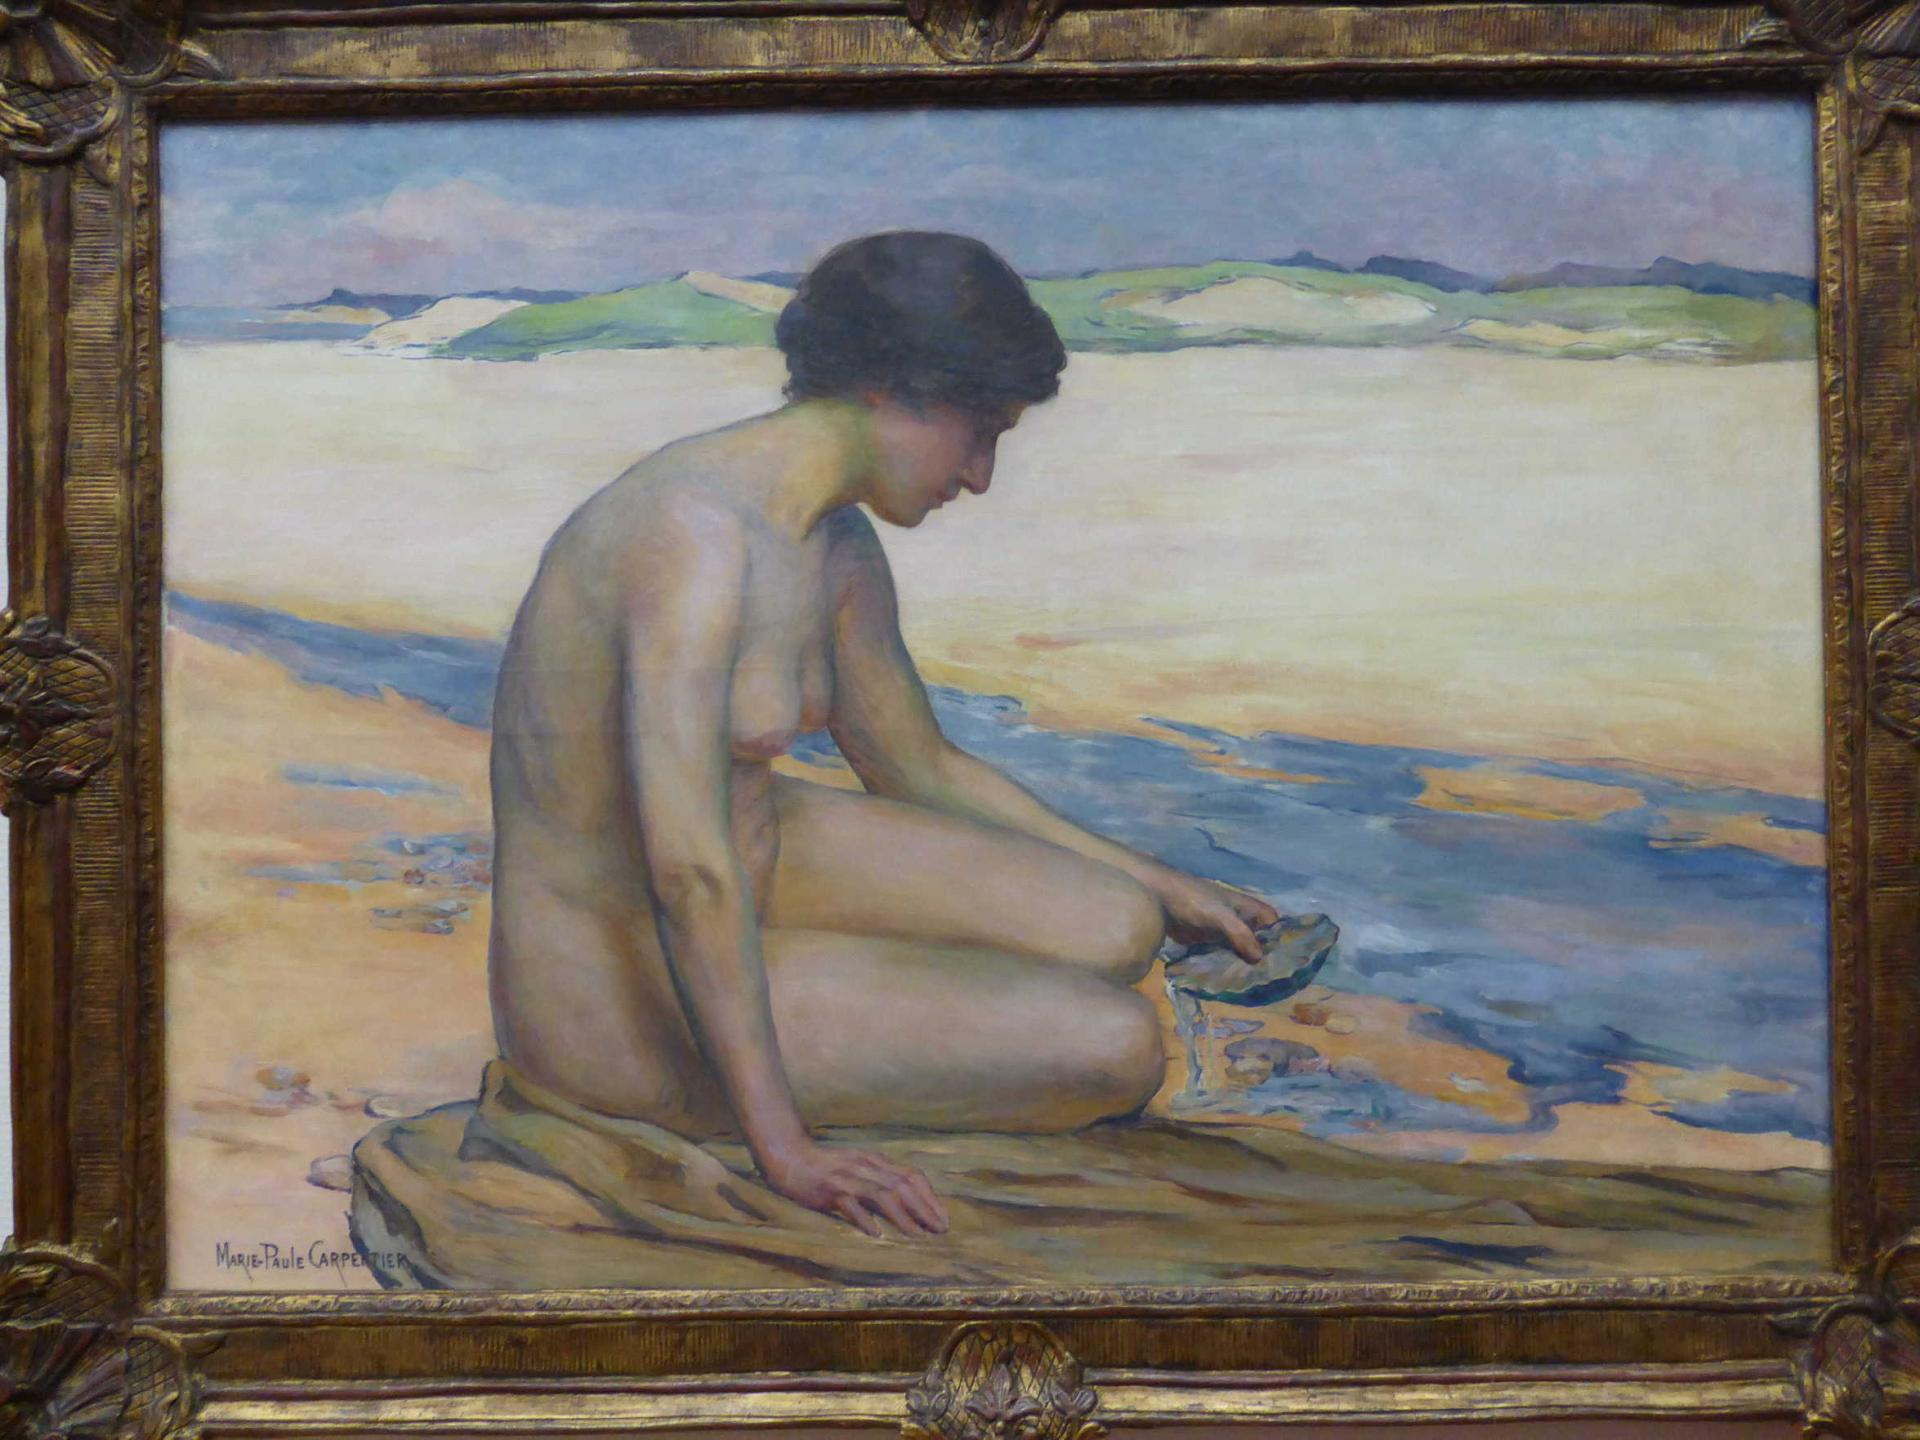 Marie-Paule Carpentier, La Source, 1910, Libourne, Musée municipal (cl. Ph. Cachau)